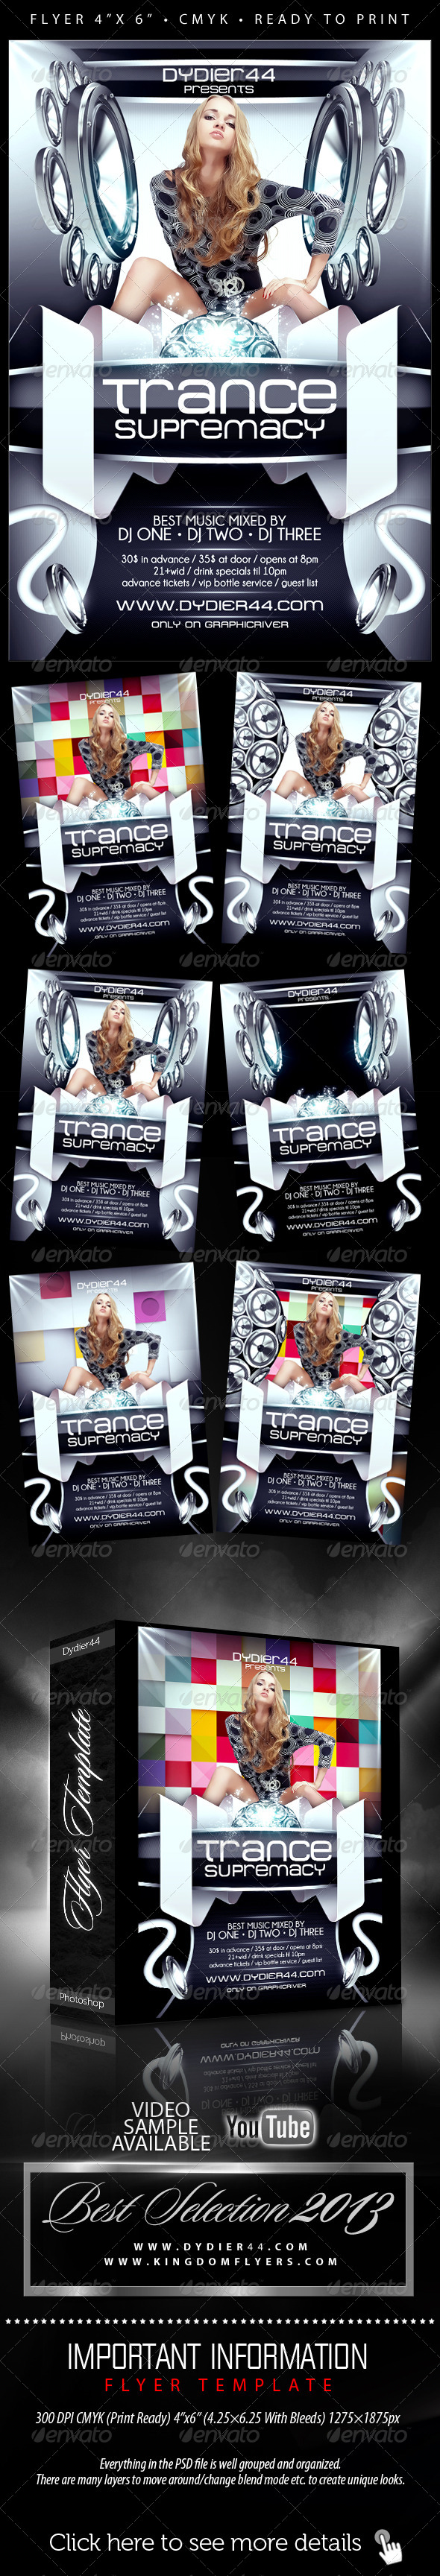 GraphicRiver Trance Supremacy Flyer Template 4x6 5522999